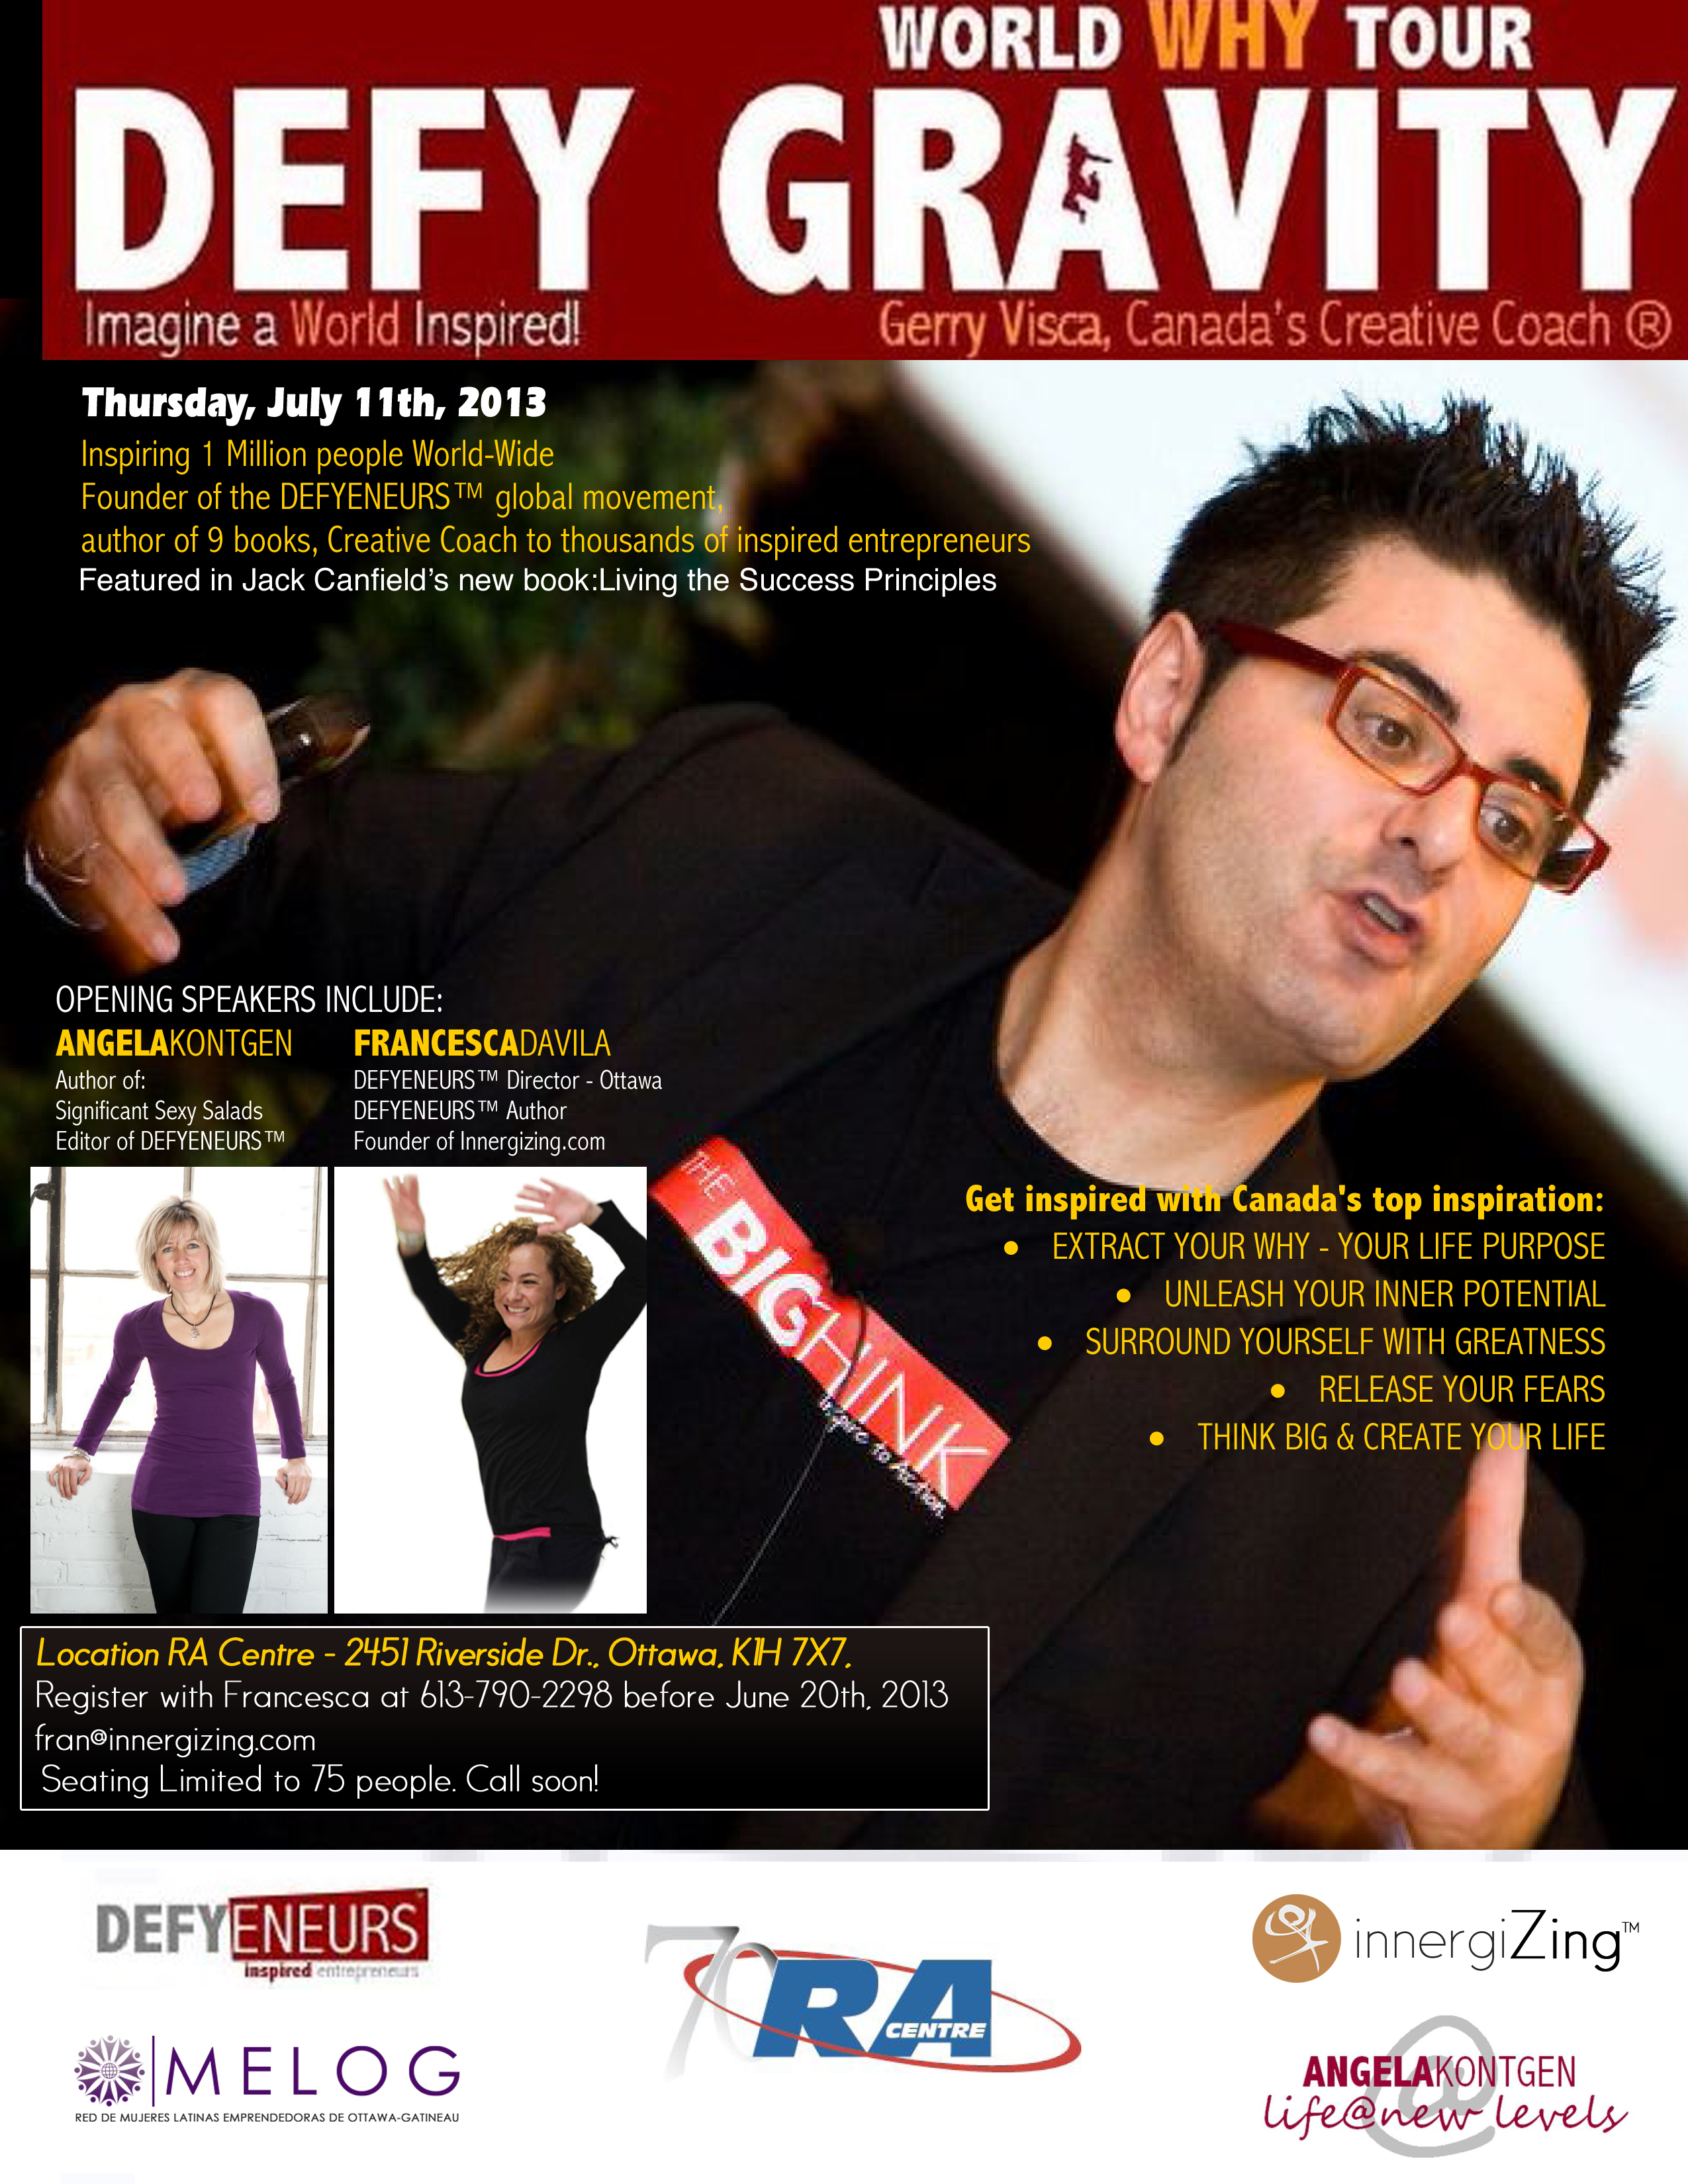 Create Your Life With Canada's Creative Coach Gerry Visca - Defyeneurs Gerryvisca July11th 1 1